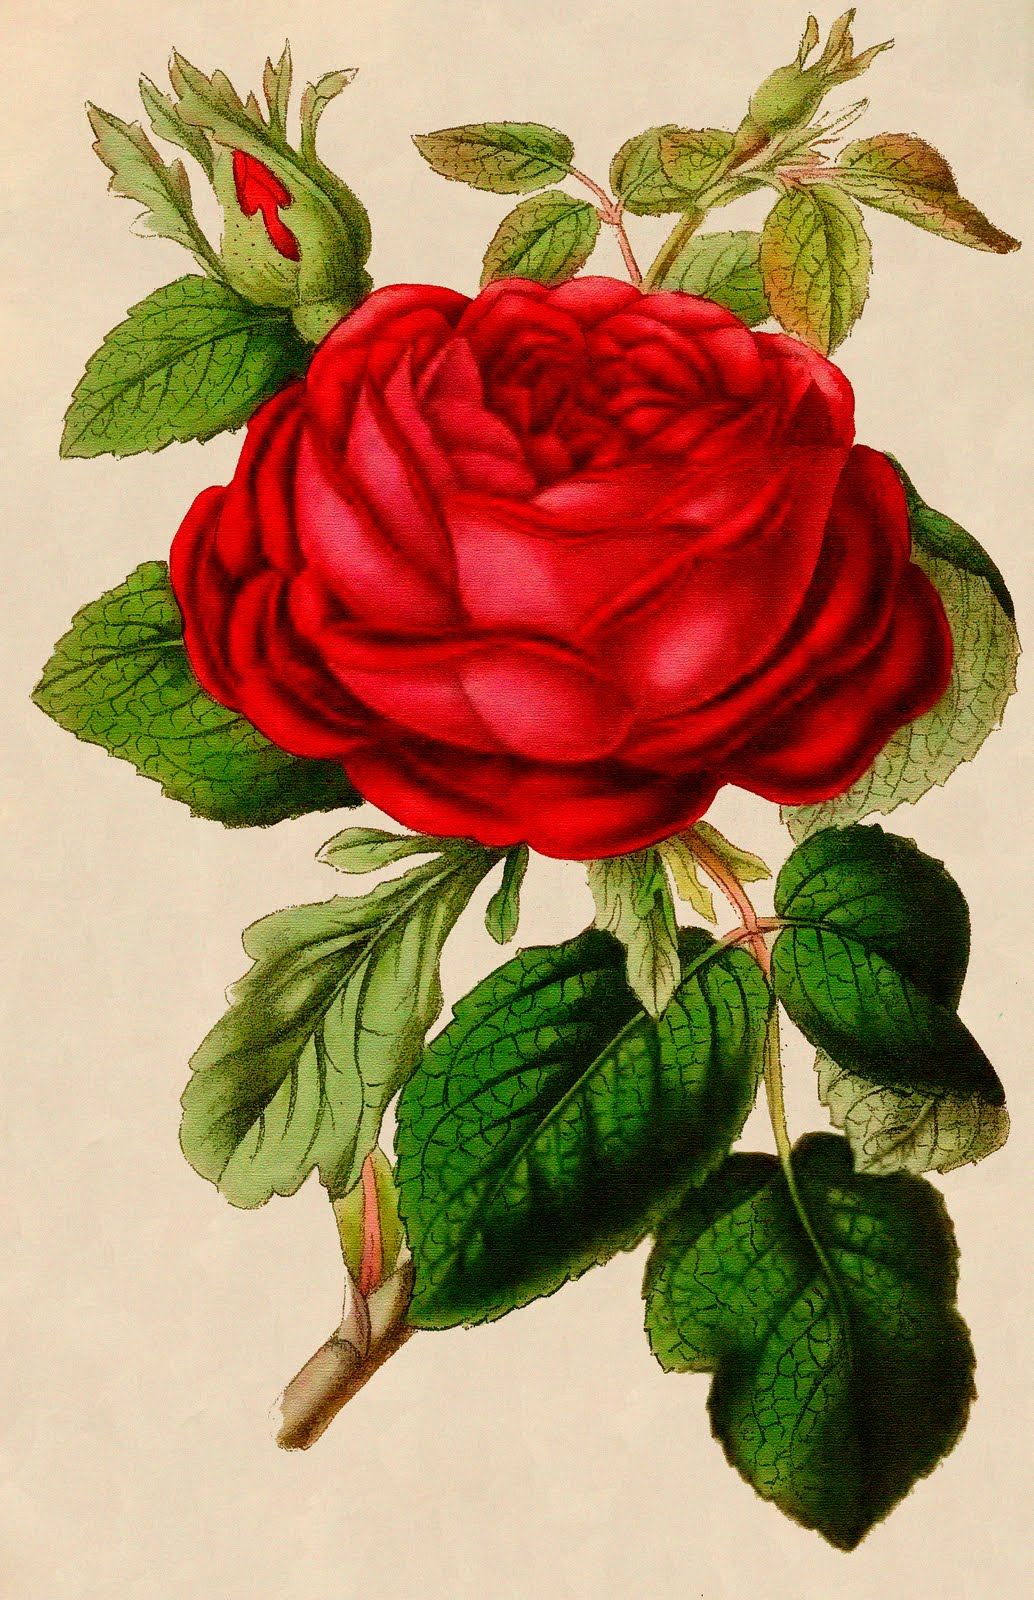 Drawn red rose graphic  of Graphic: Antique Free